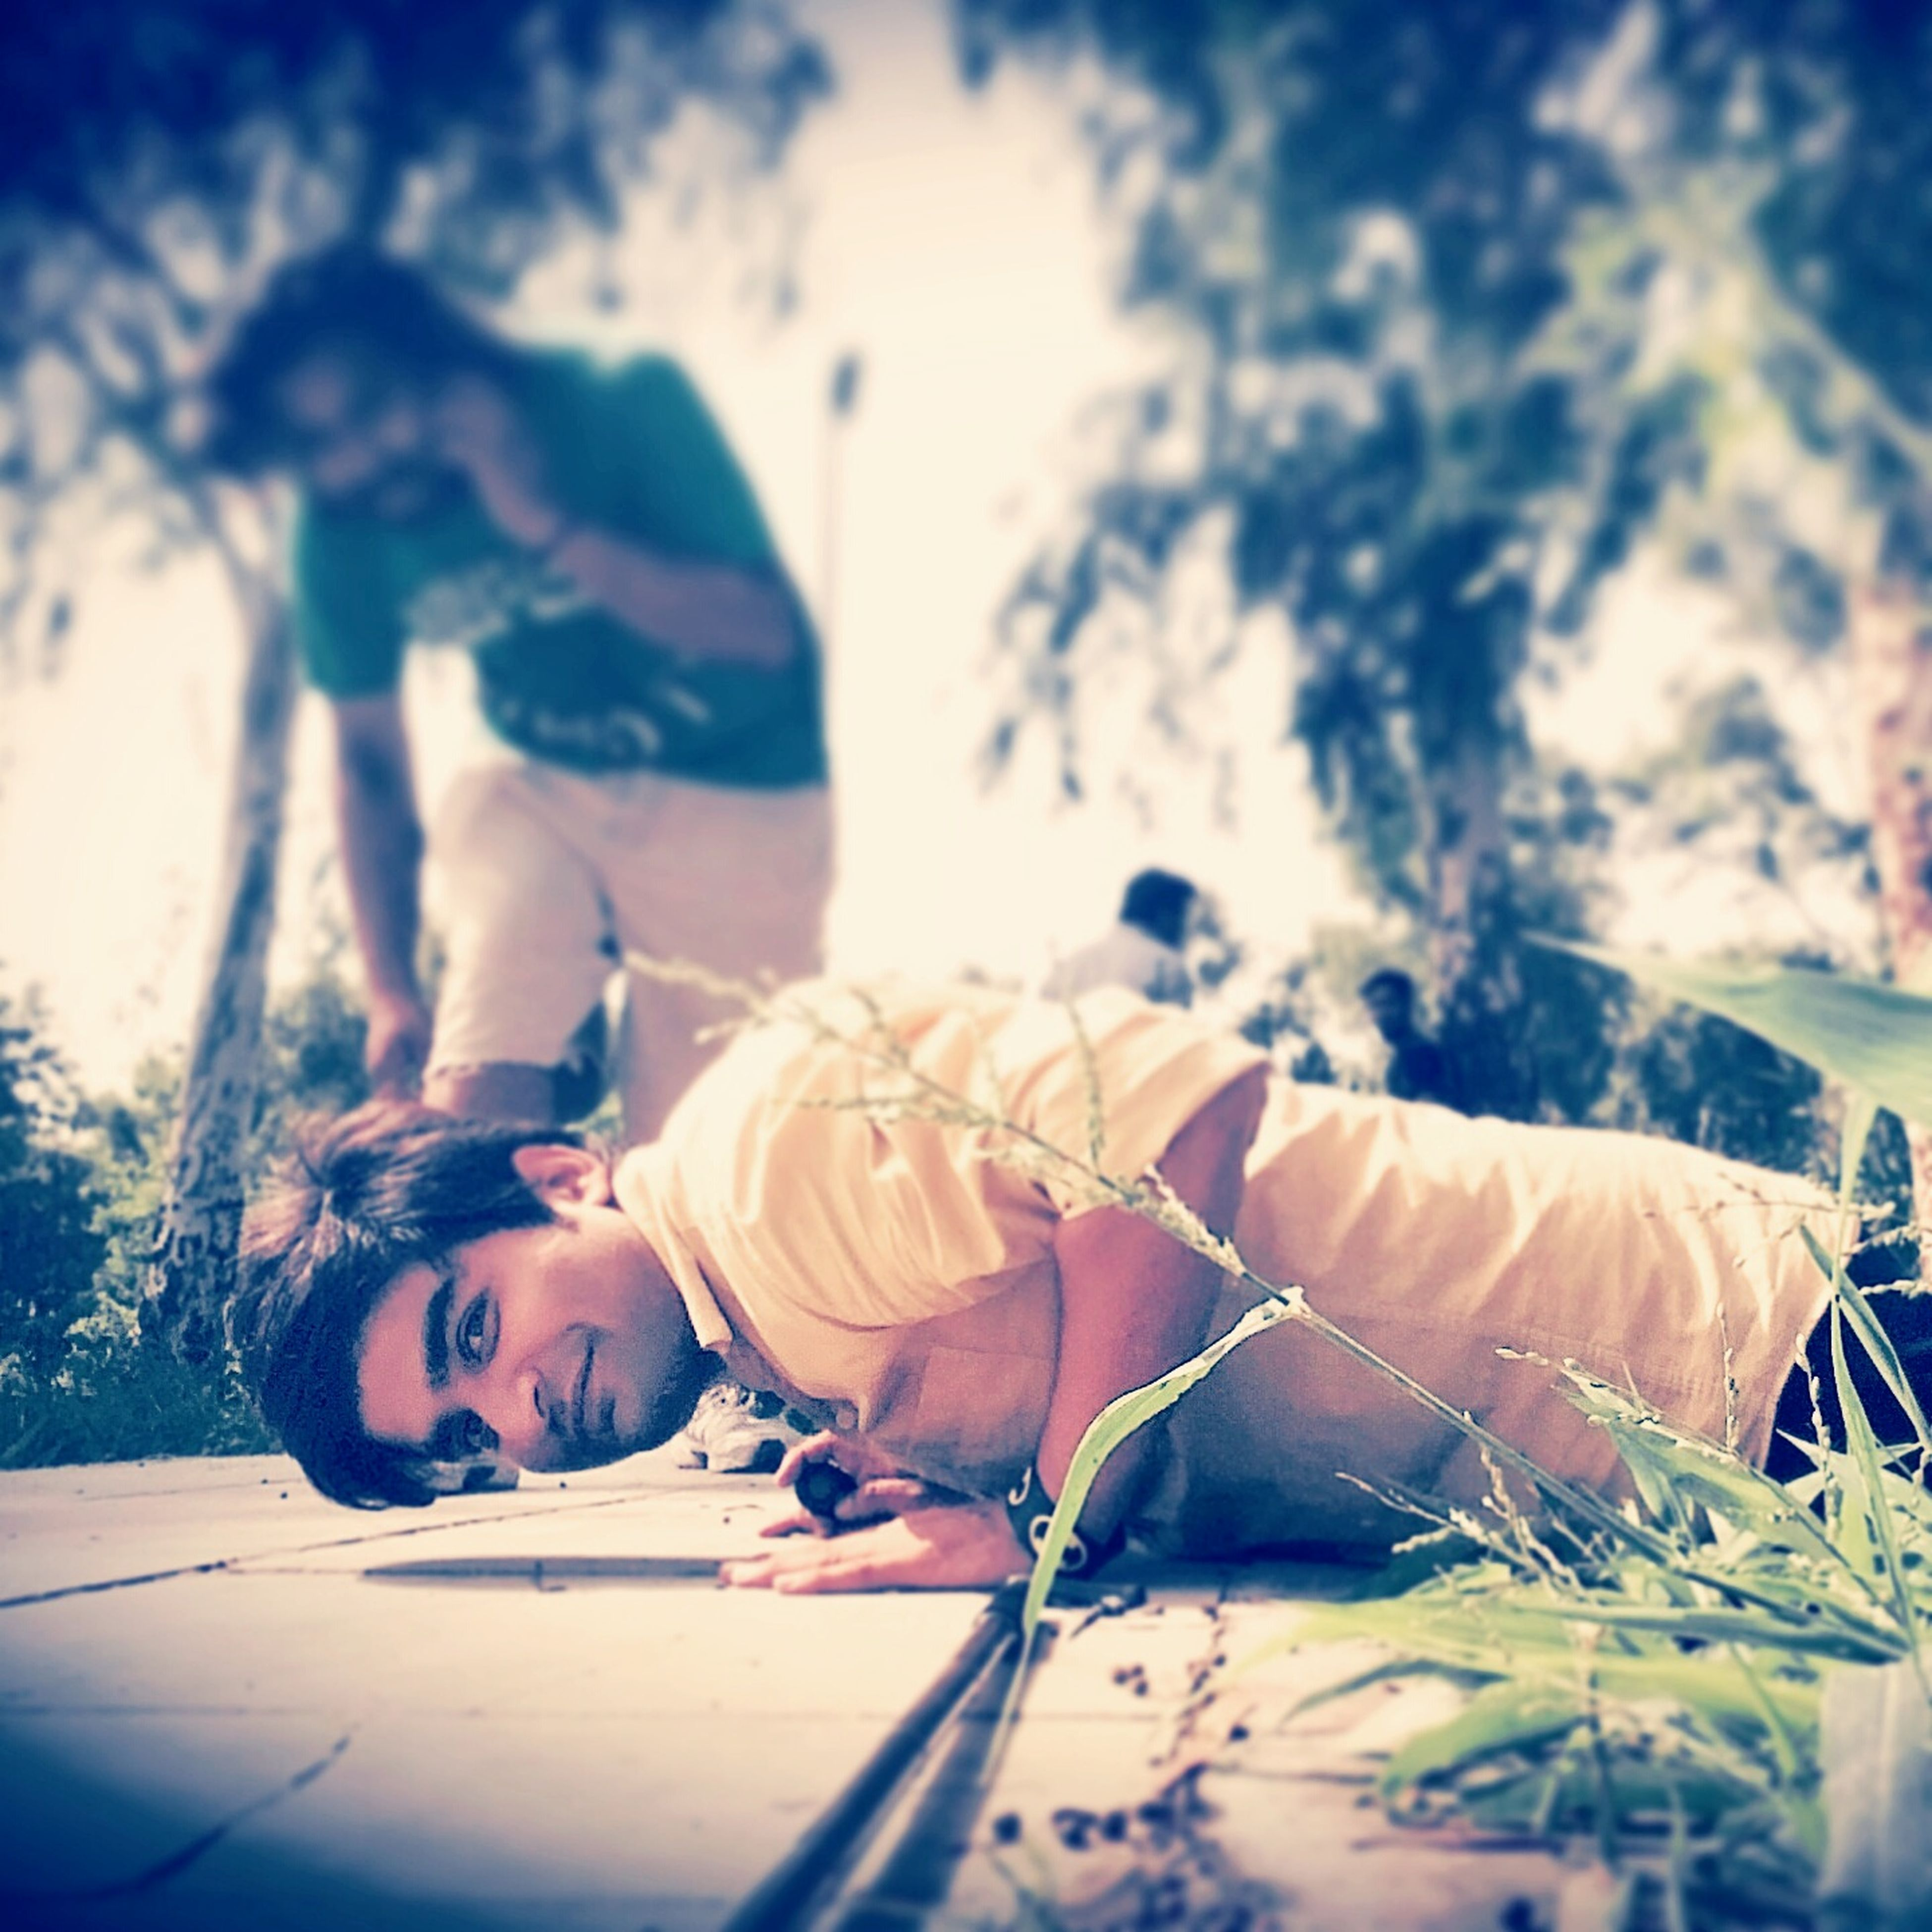 Iamin May Be Cool ? Peace ✌ Love ♥ Dreamy♡ Instagram Adityasharma1093.as Instame Stoned Or Dreaming